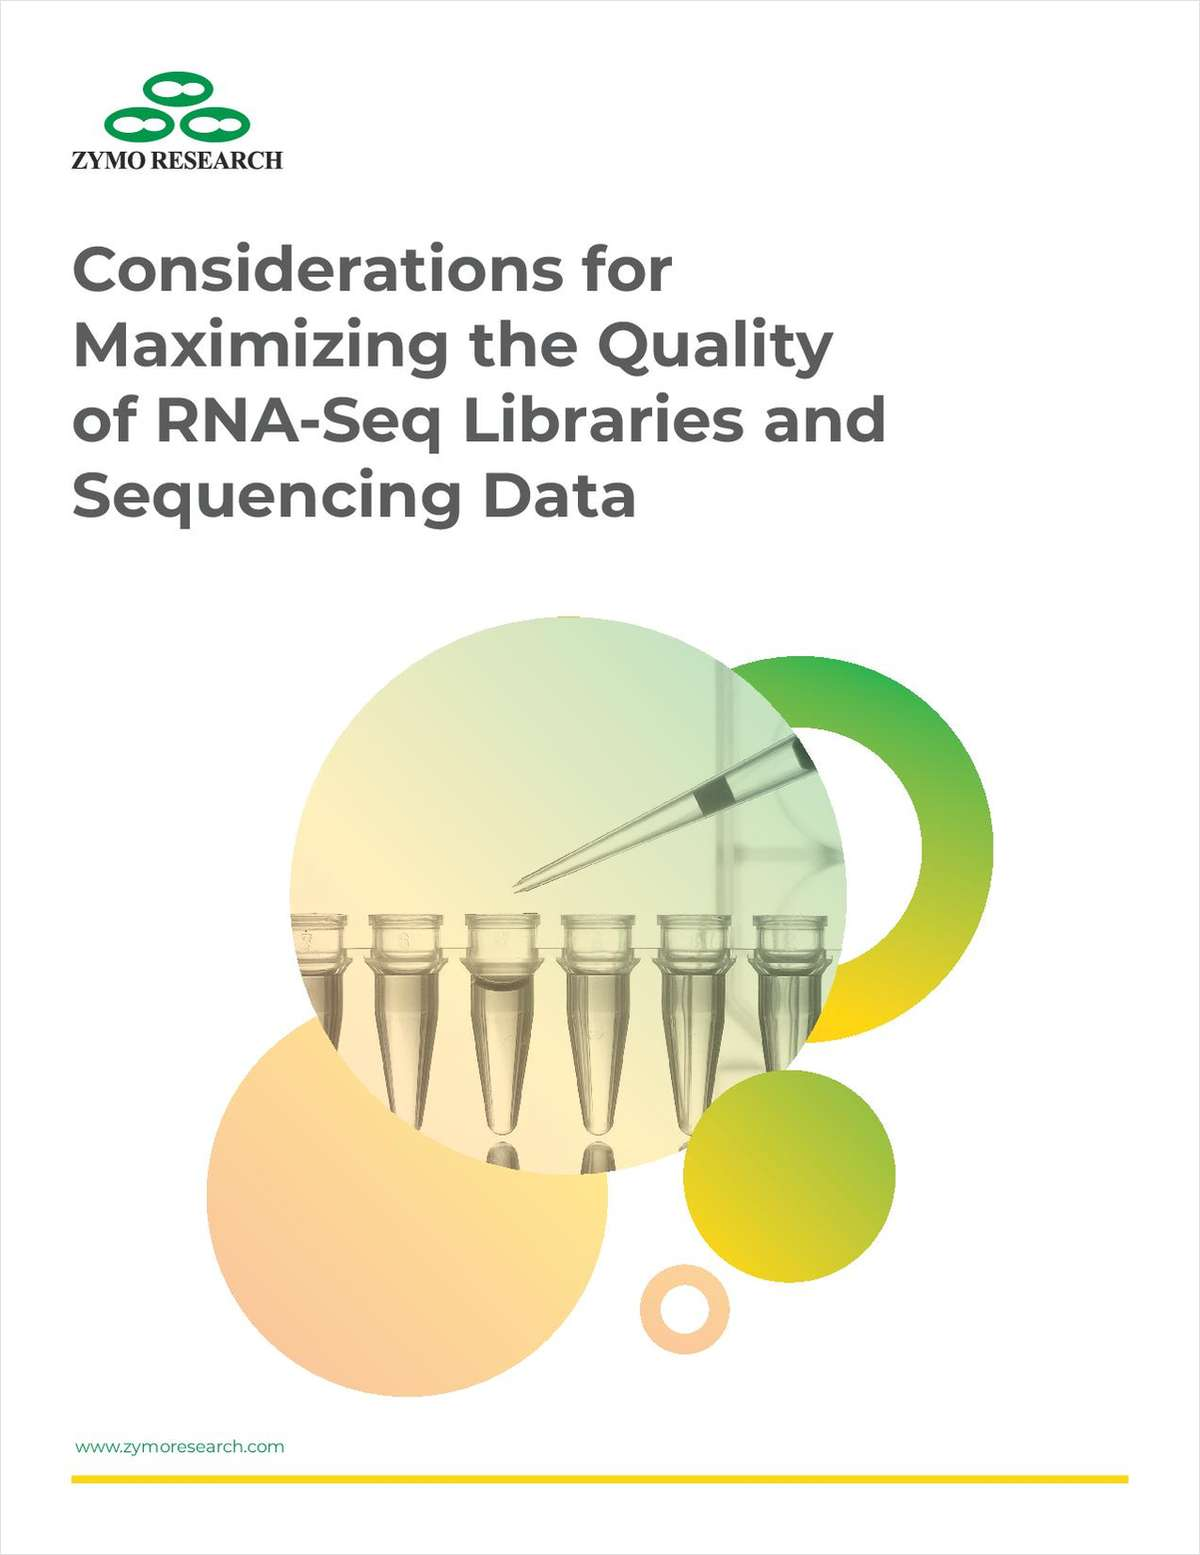 Considerations for Maximizing the Quality of RNA-Seq Libraries and Sequencing Data